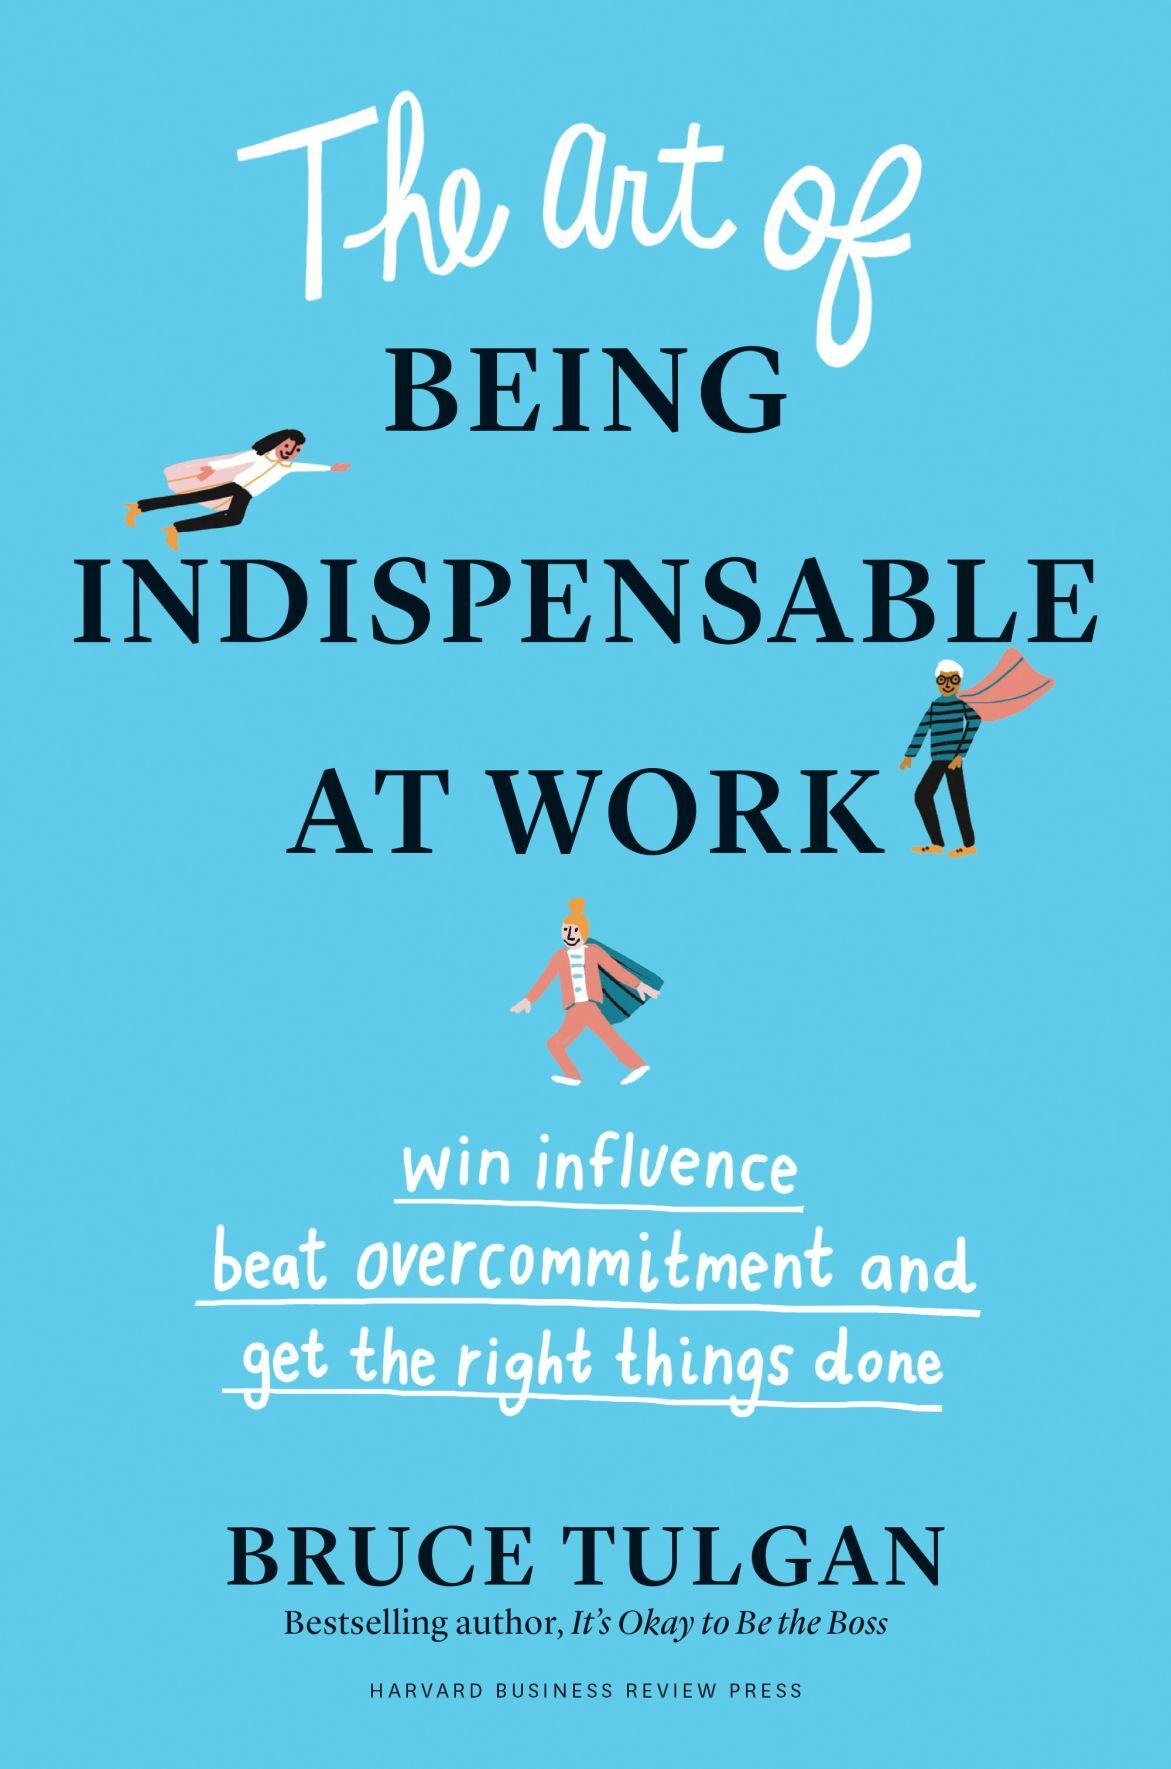 'The Art of Being Indispensable at Work' cover